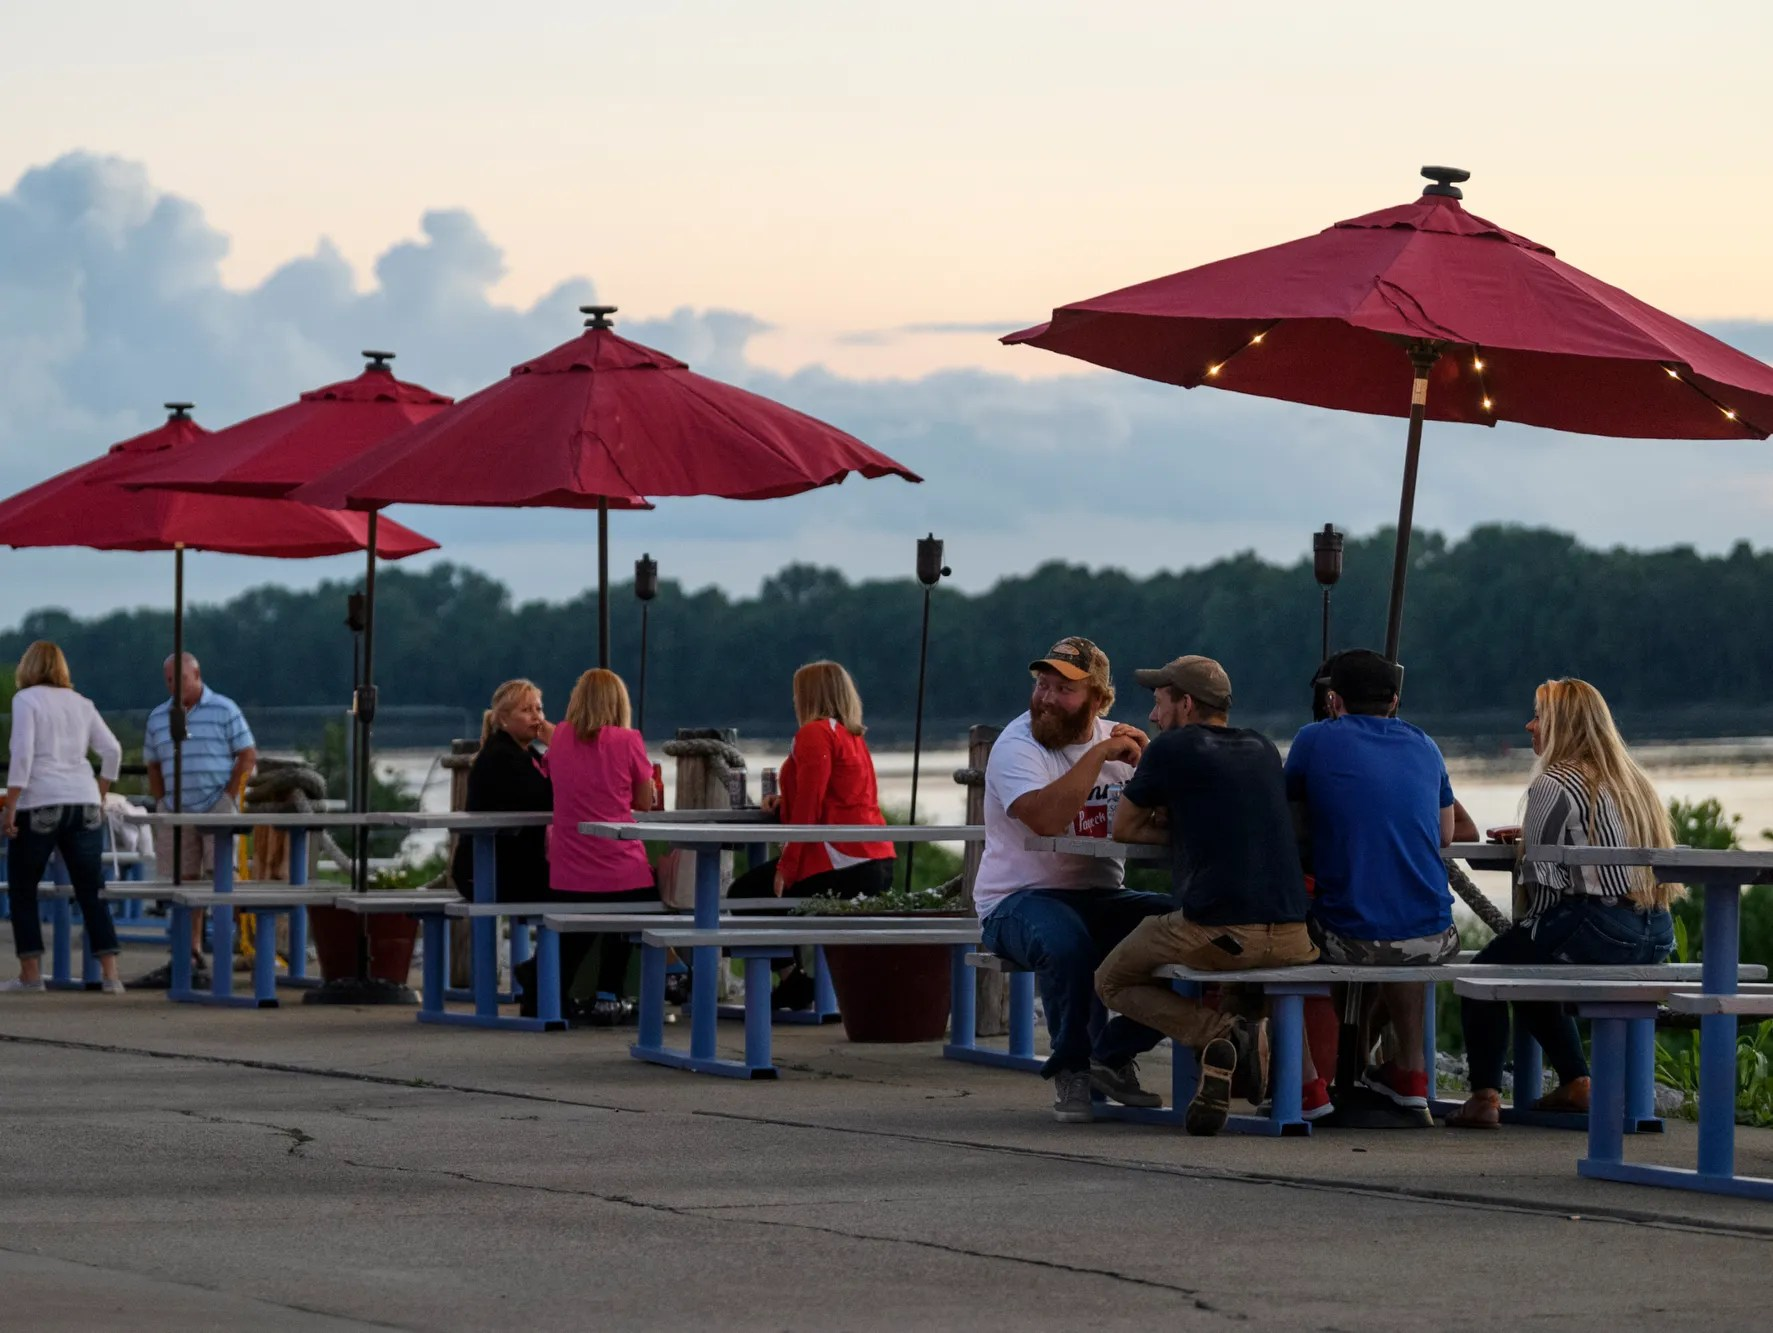 kc s marina pointe brings southern beach bar fun to the ohio river